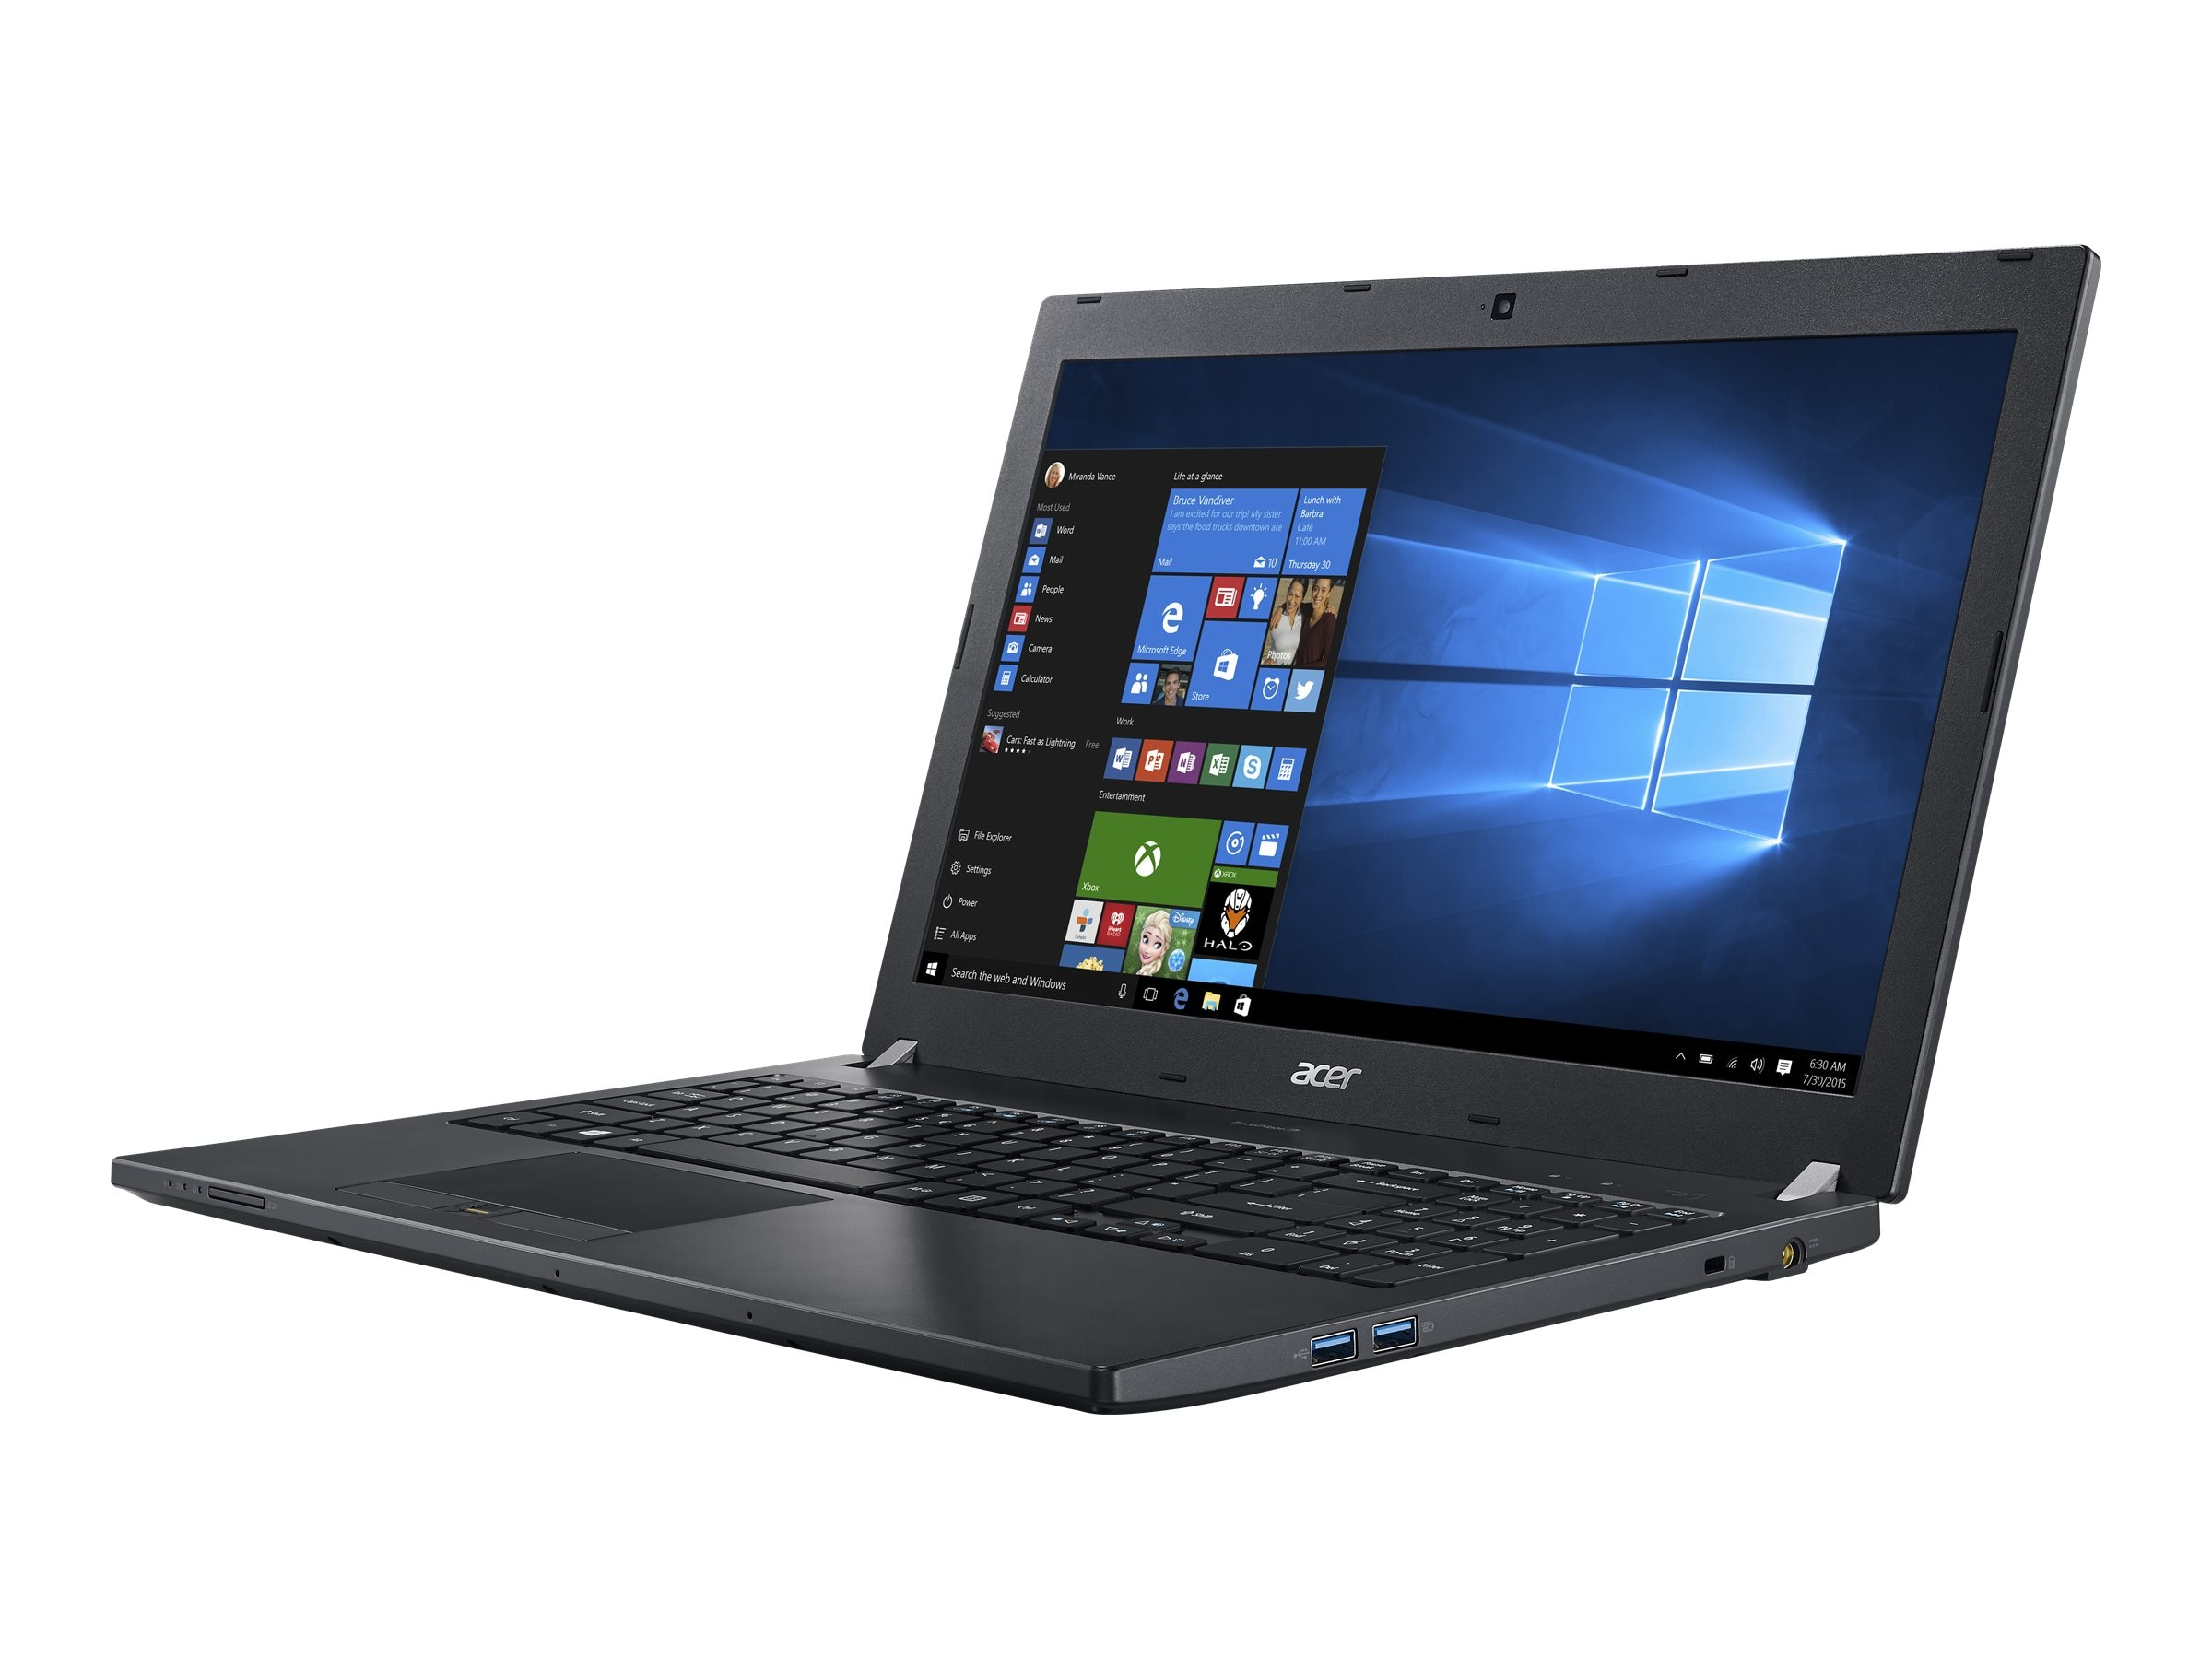 Acer Travelmate P658-M-59SY 2.3GHz Core i5 15.6in display